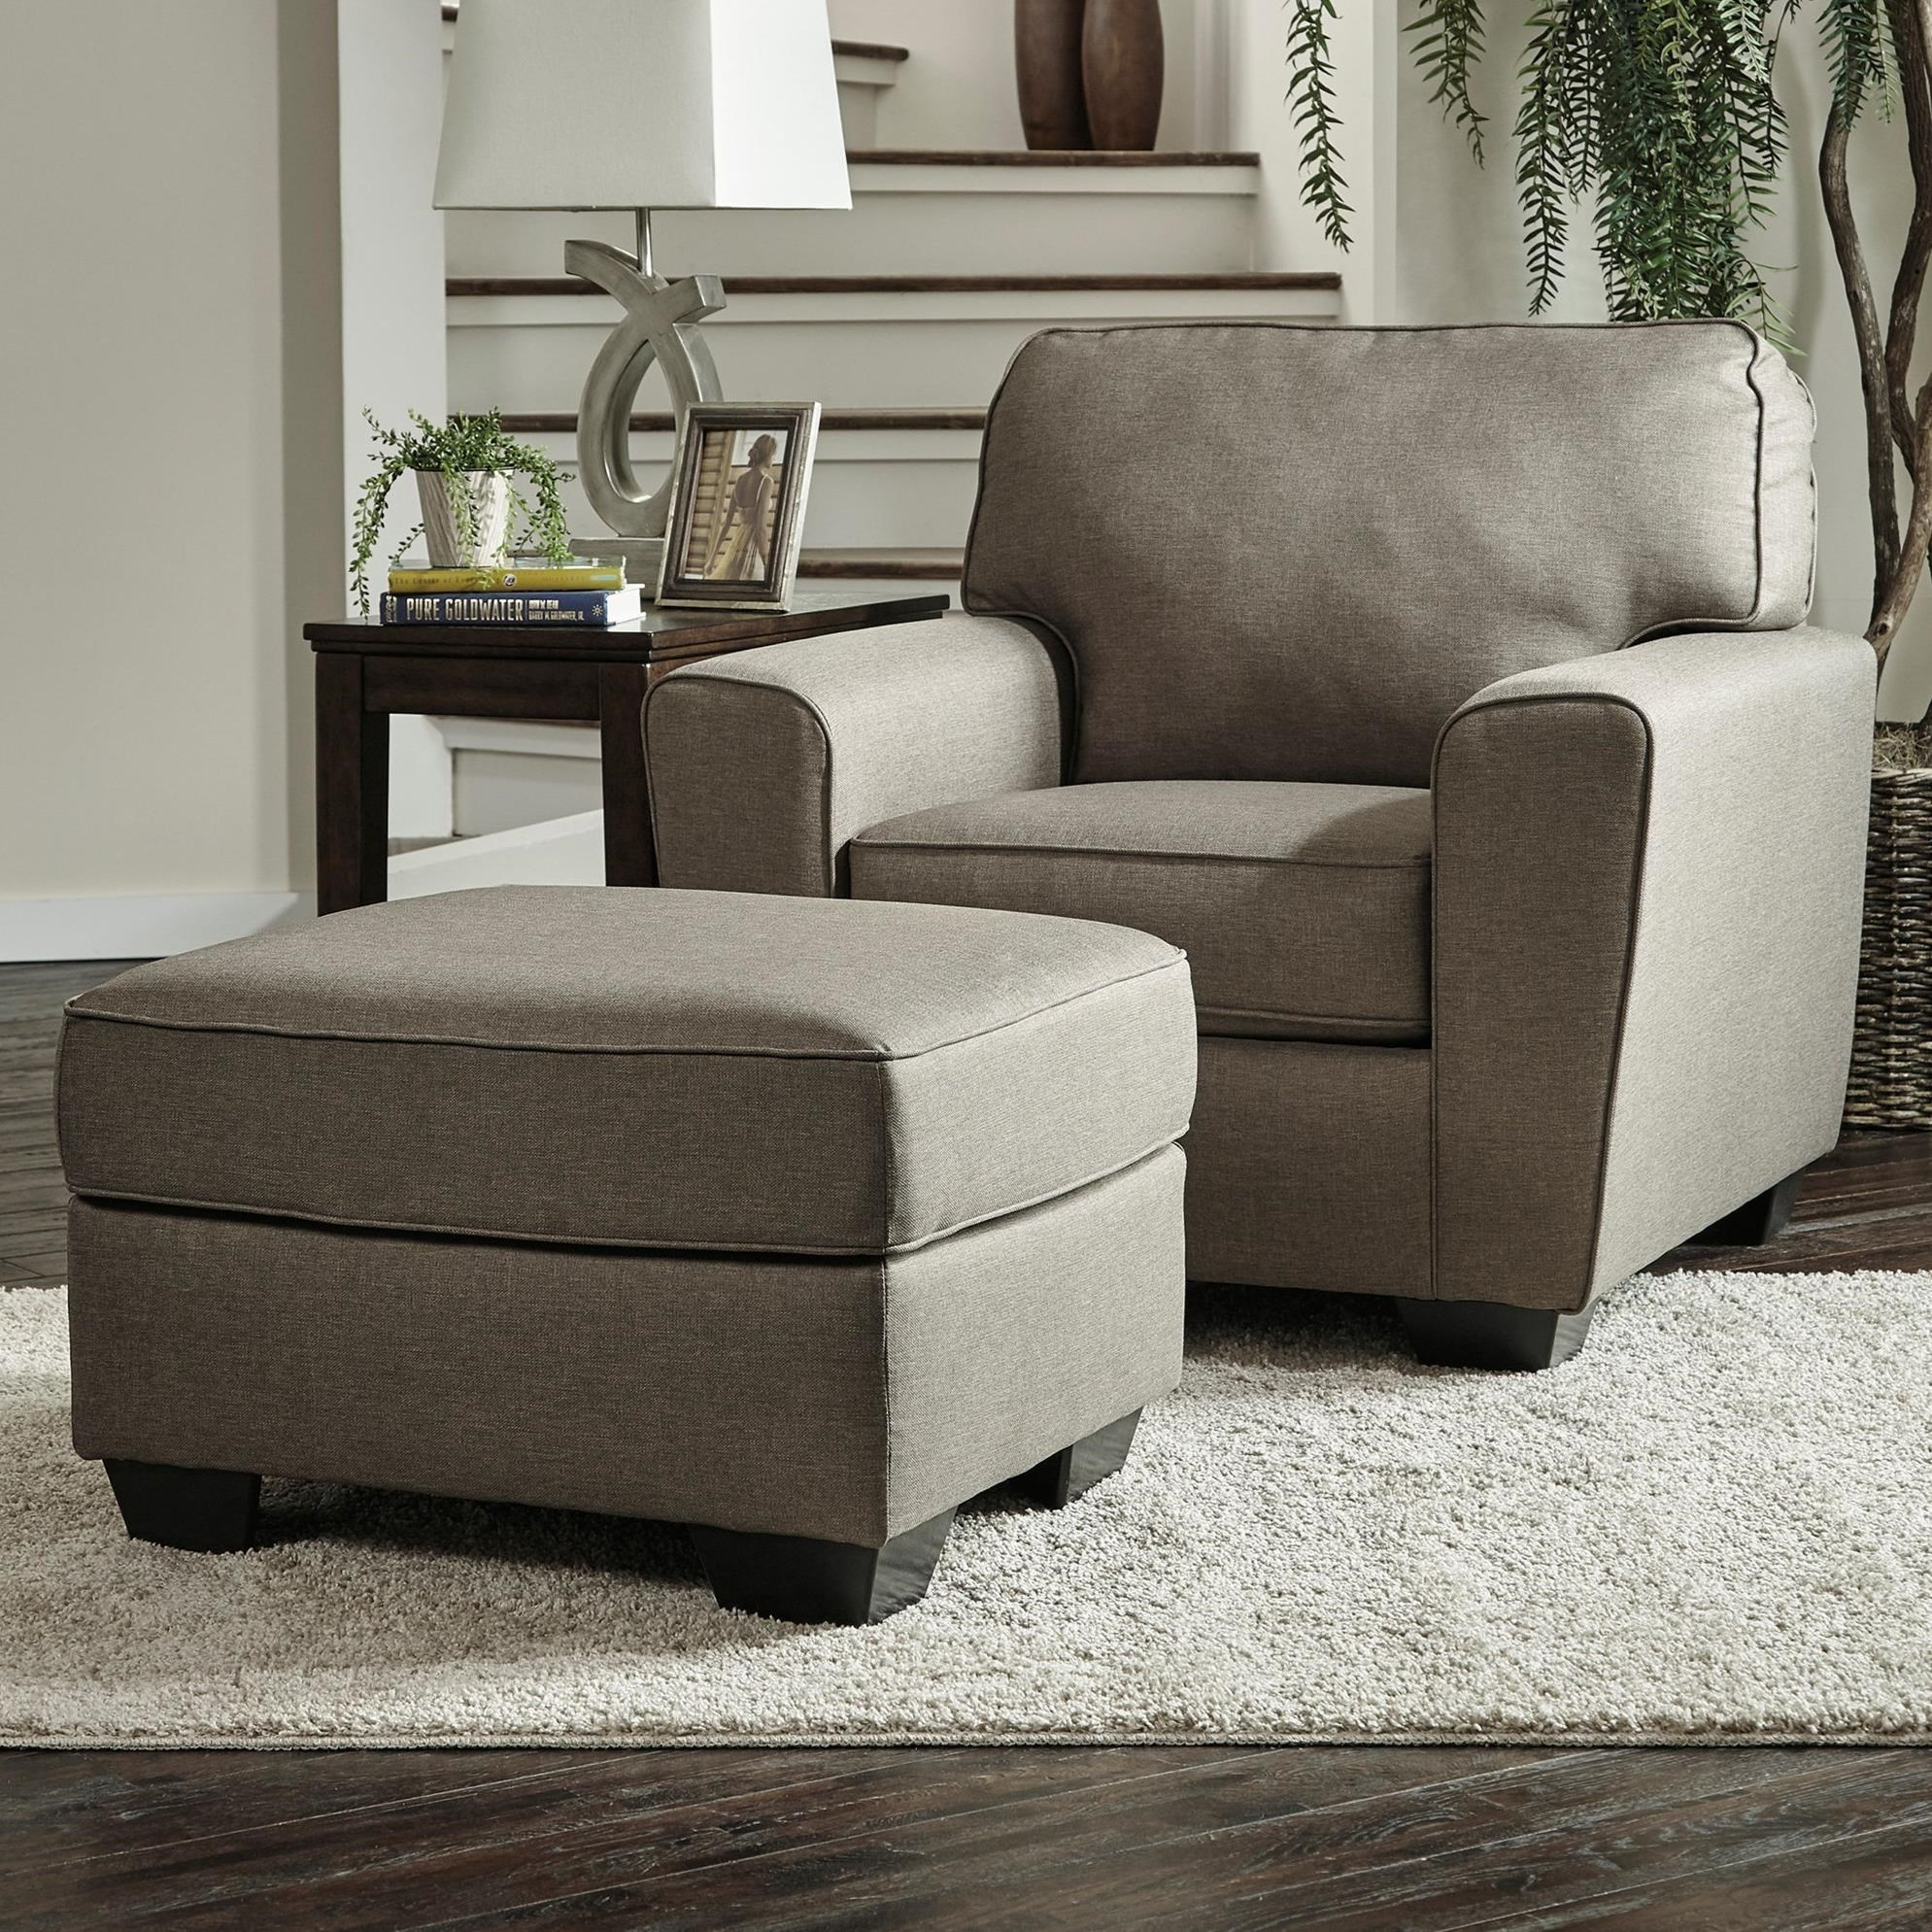 Ottoman In Living Room: Benchcraft Calicho Contemporary Chair & Ottoman